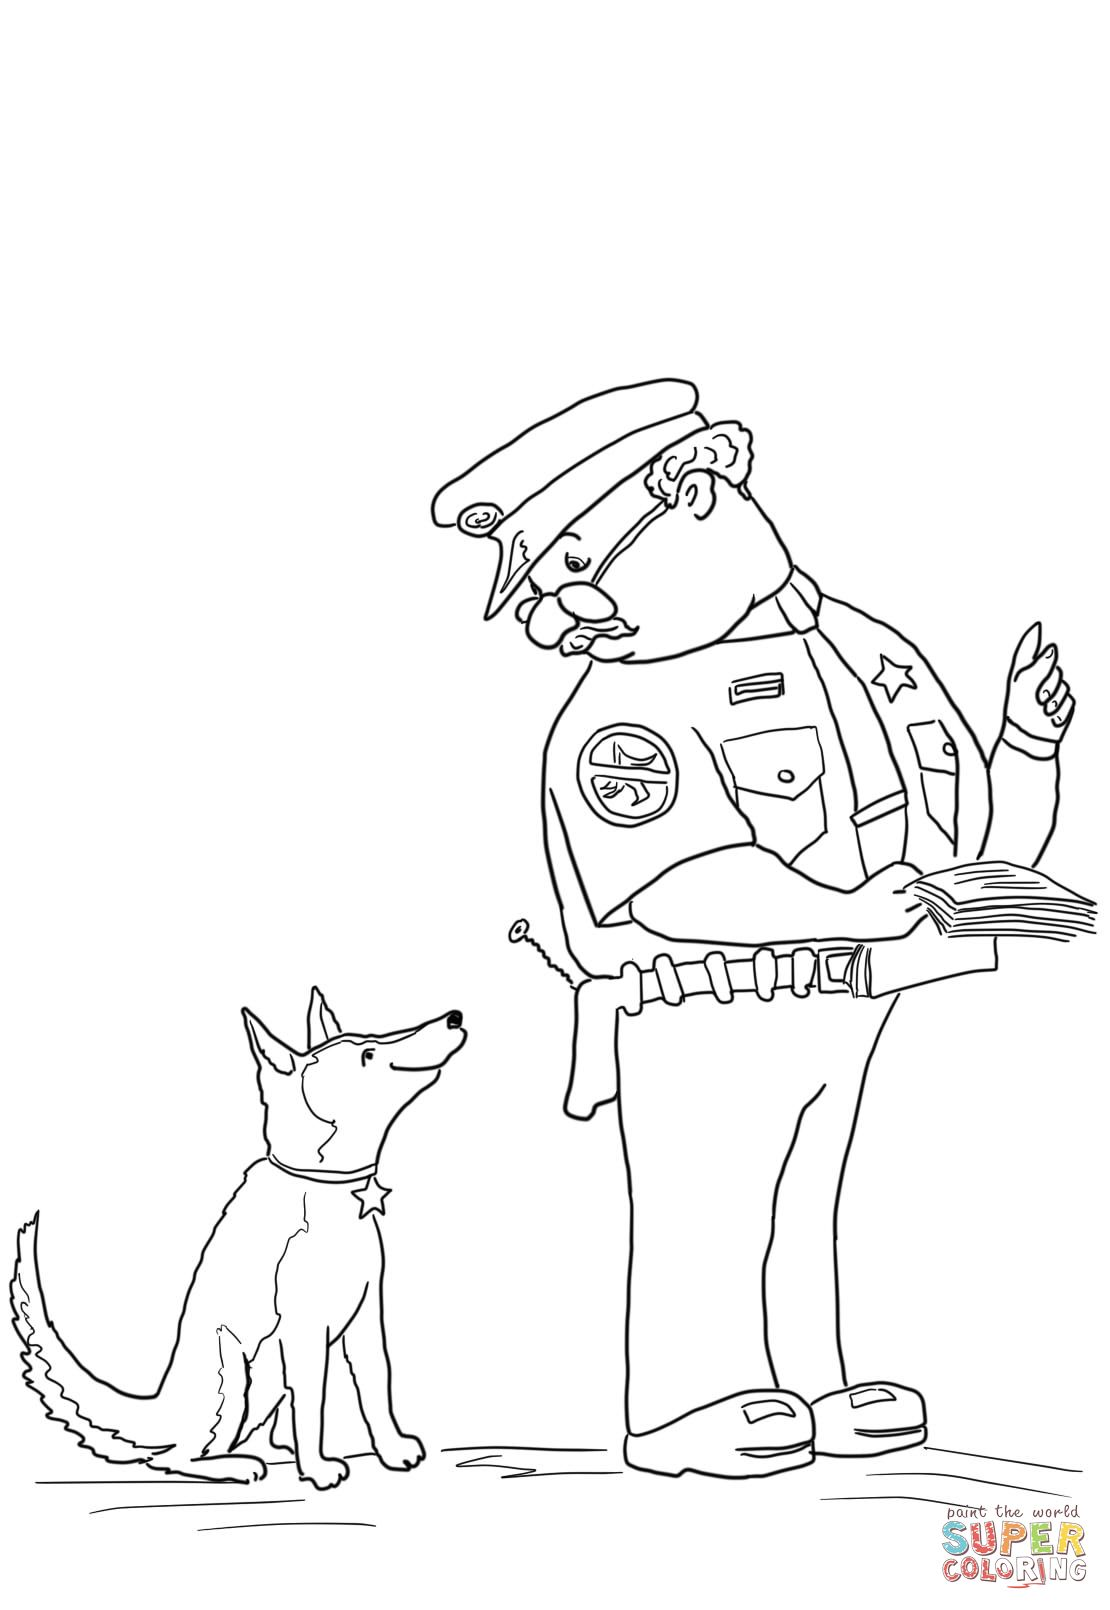 officer buckle and gloria clip art officer buckle and gloria clipart collection cliparts art buckle gloria officer clip and